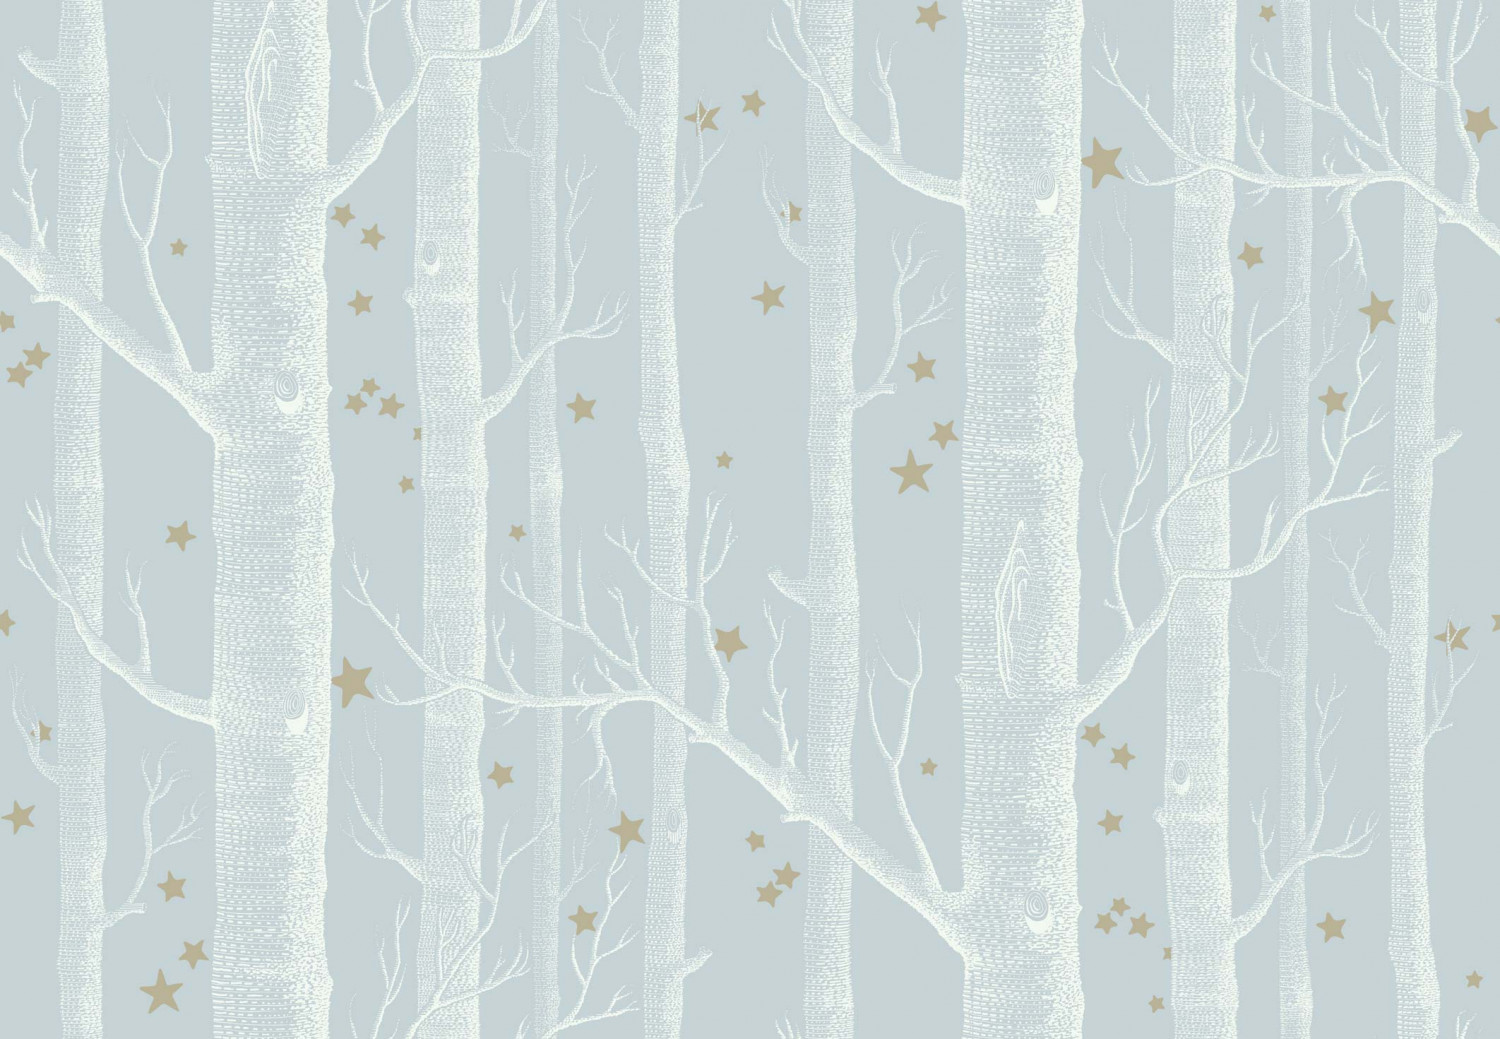 Cole And Son Woods cole & son - whimsical - woods & stars 103/11051